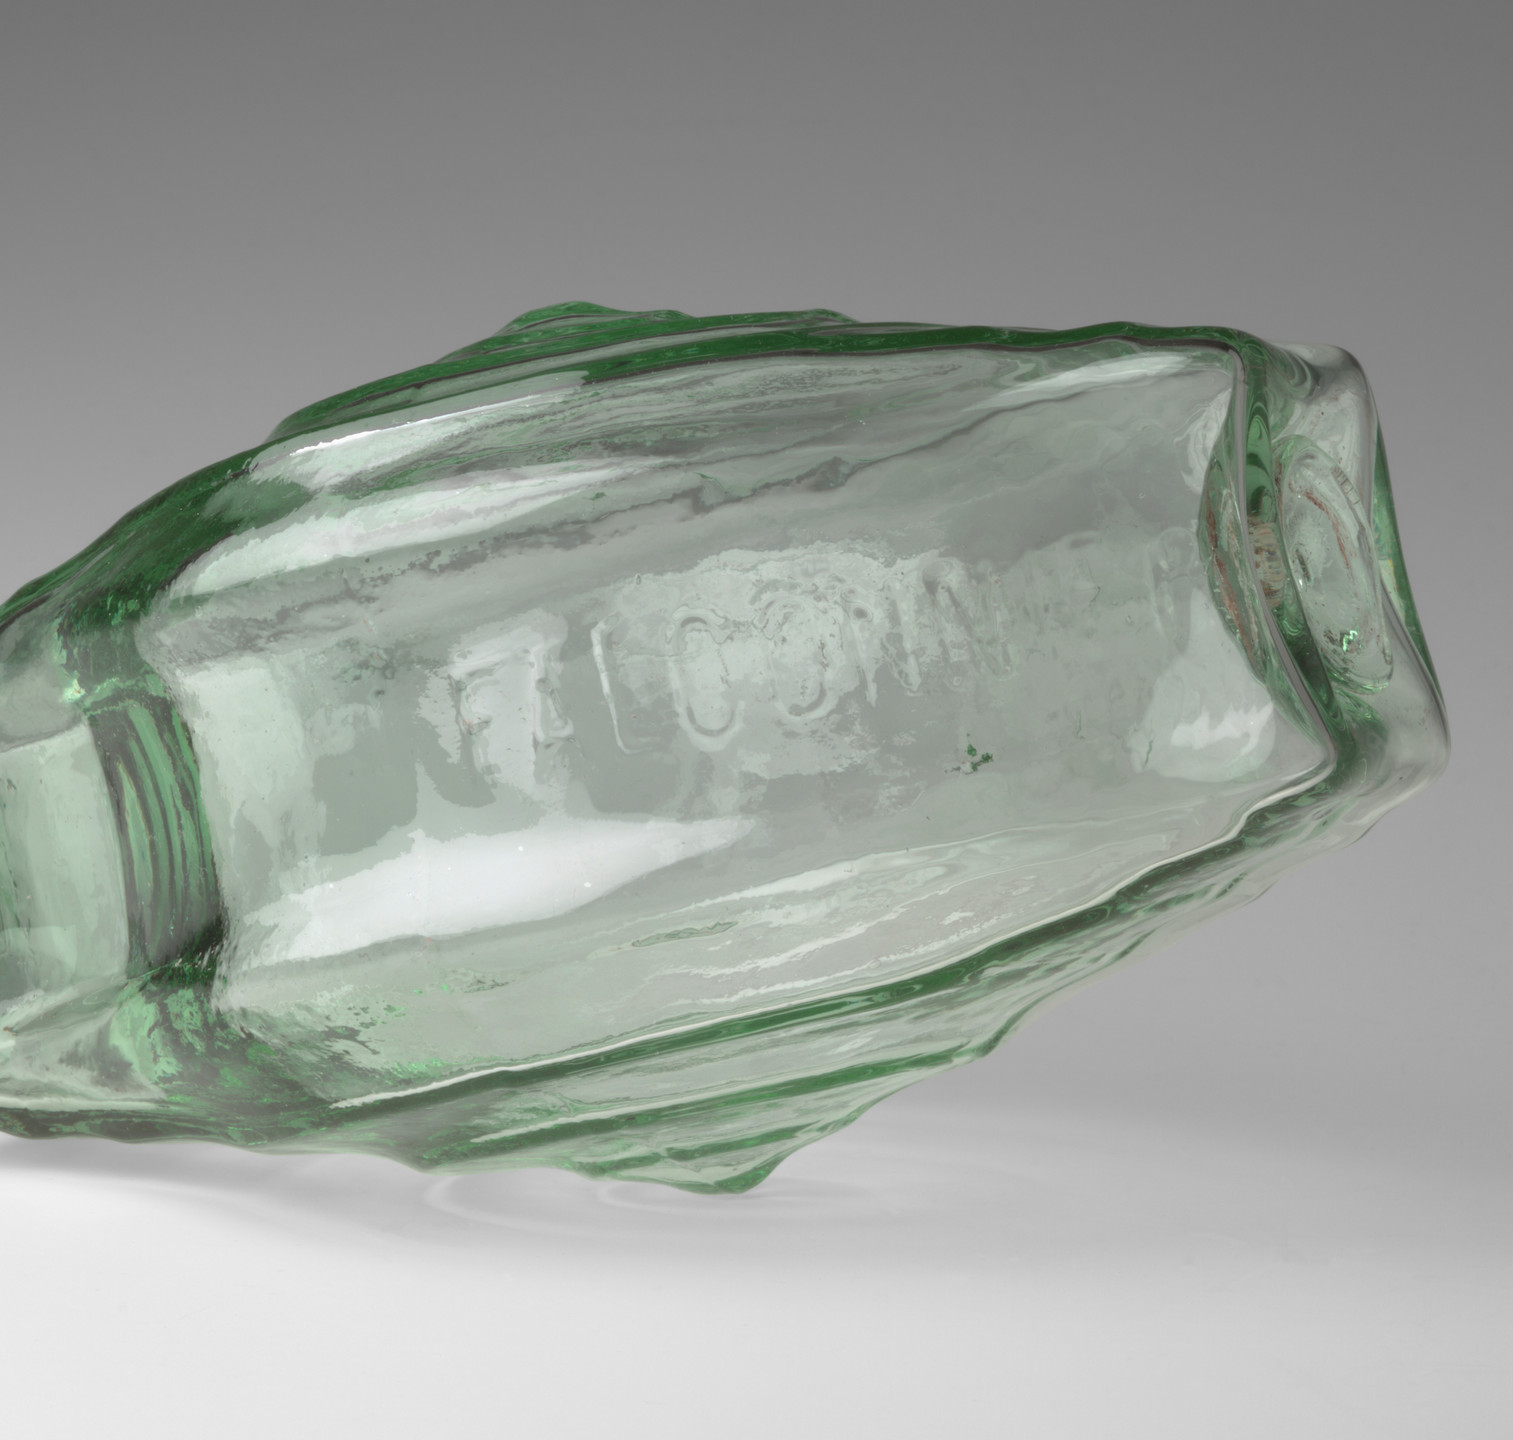 Gustave Falconnier. Glass Bricks. 1886